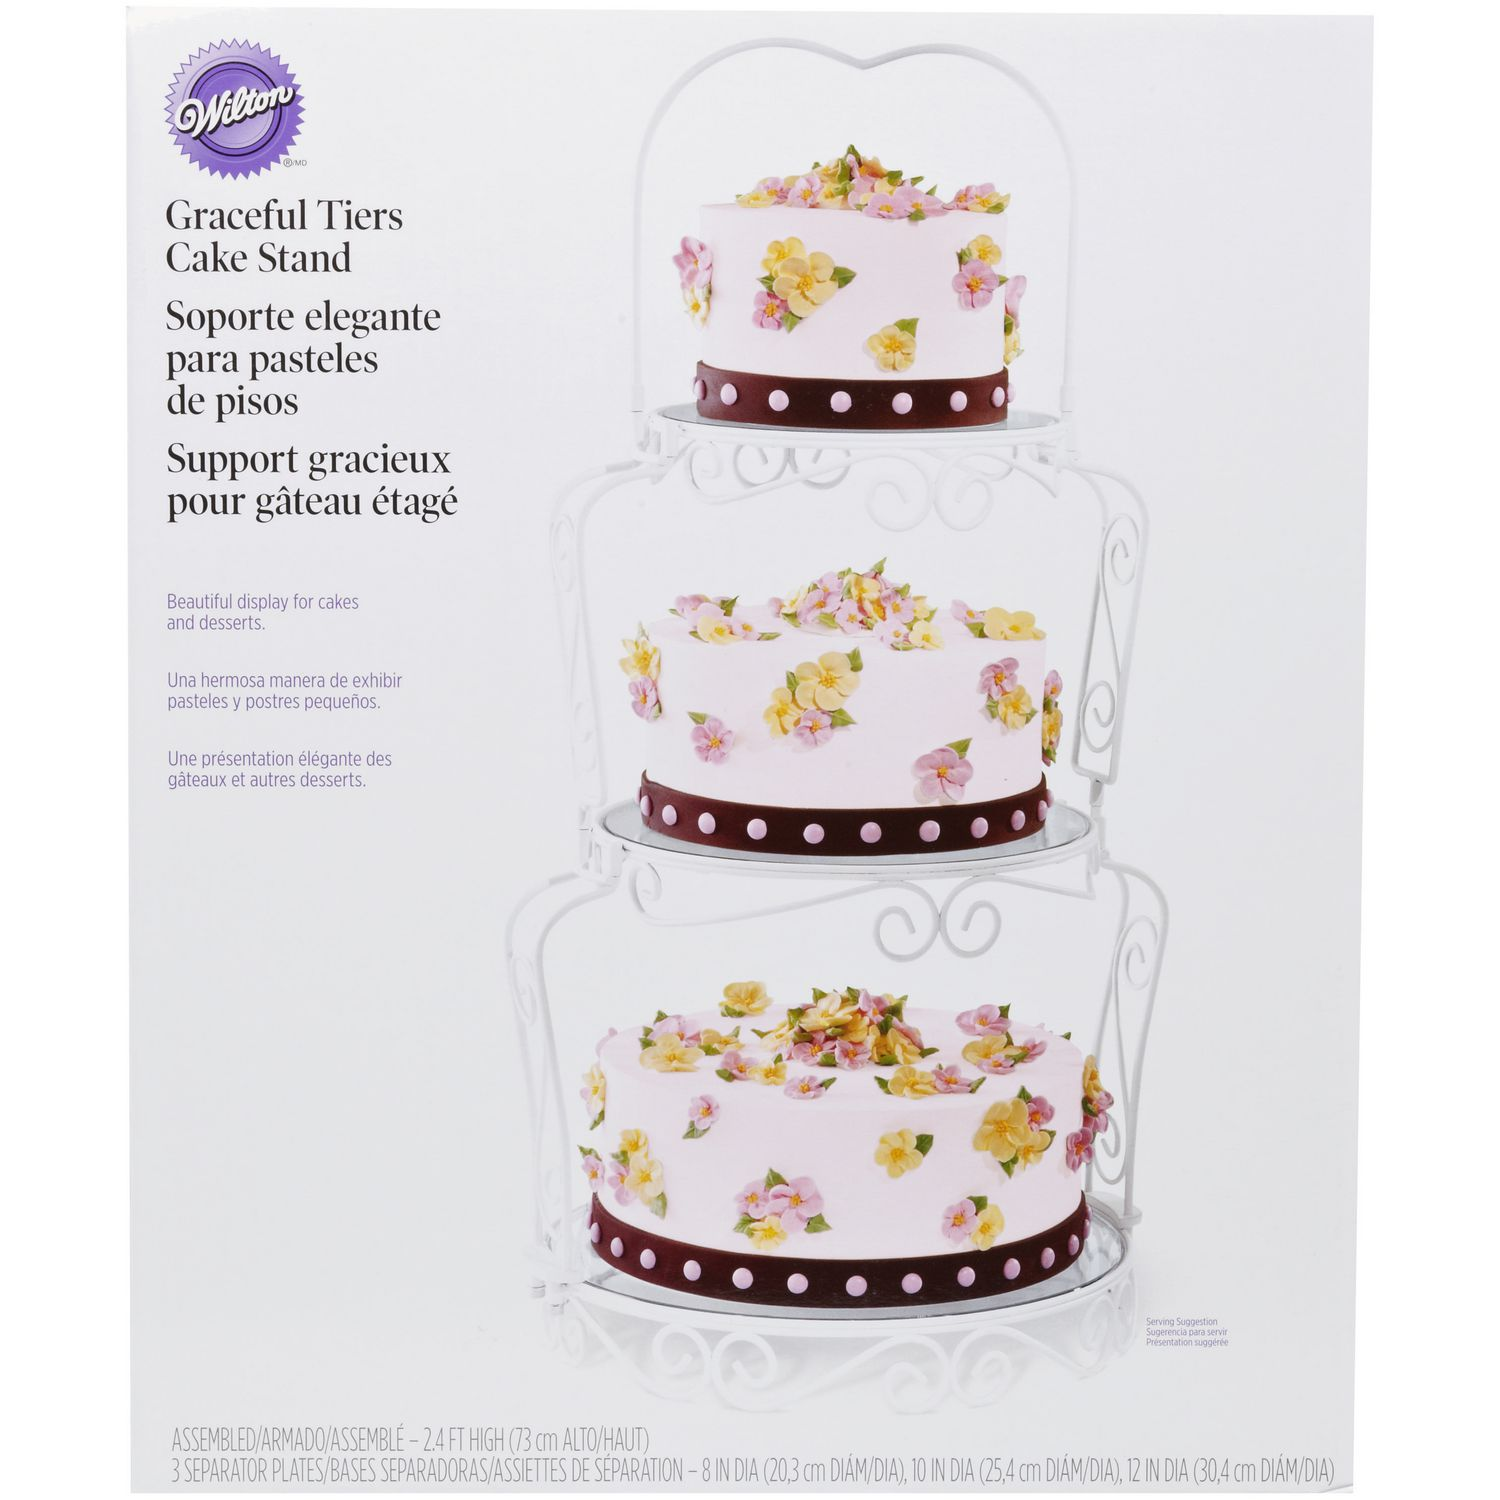 Wilton Graceful Tiers Cake Stand | Walmart Canada